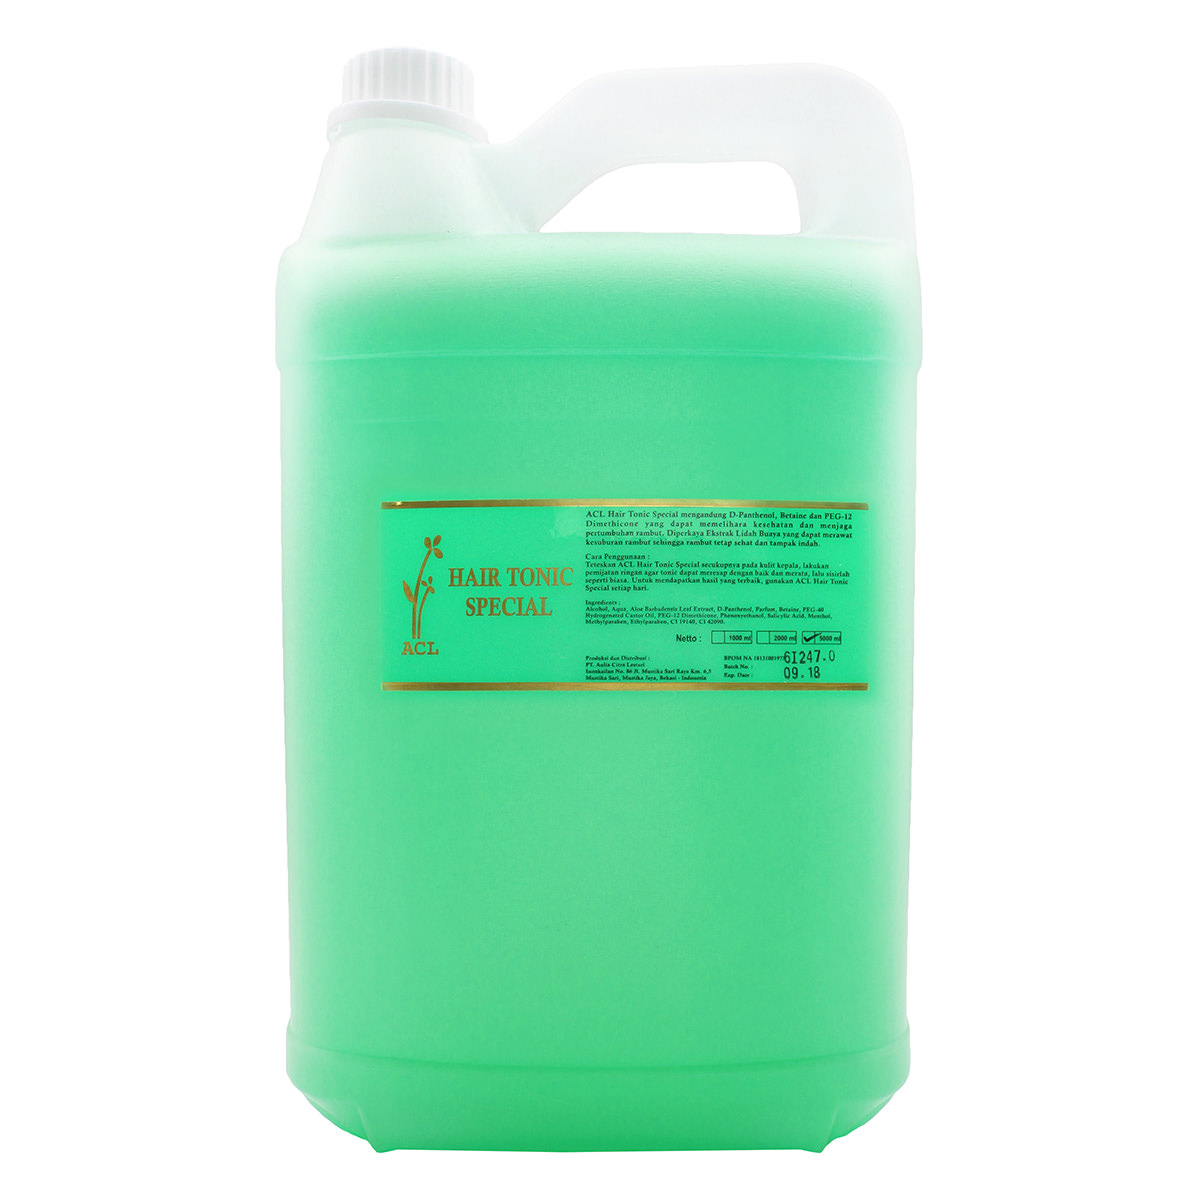 ACL - Hair Tonic Special (5000ml)_sfw (1)